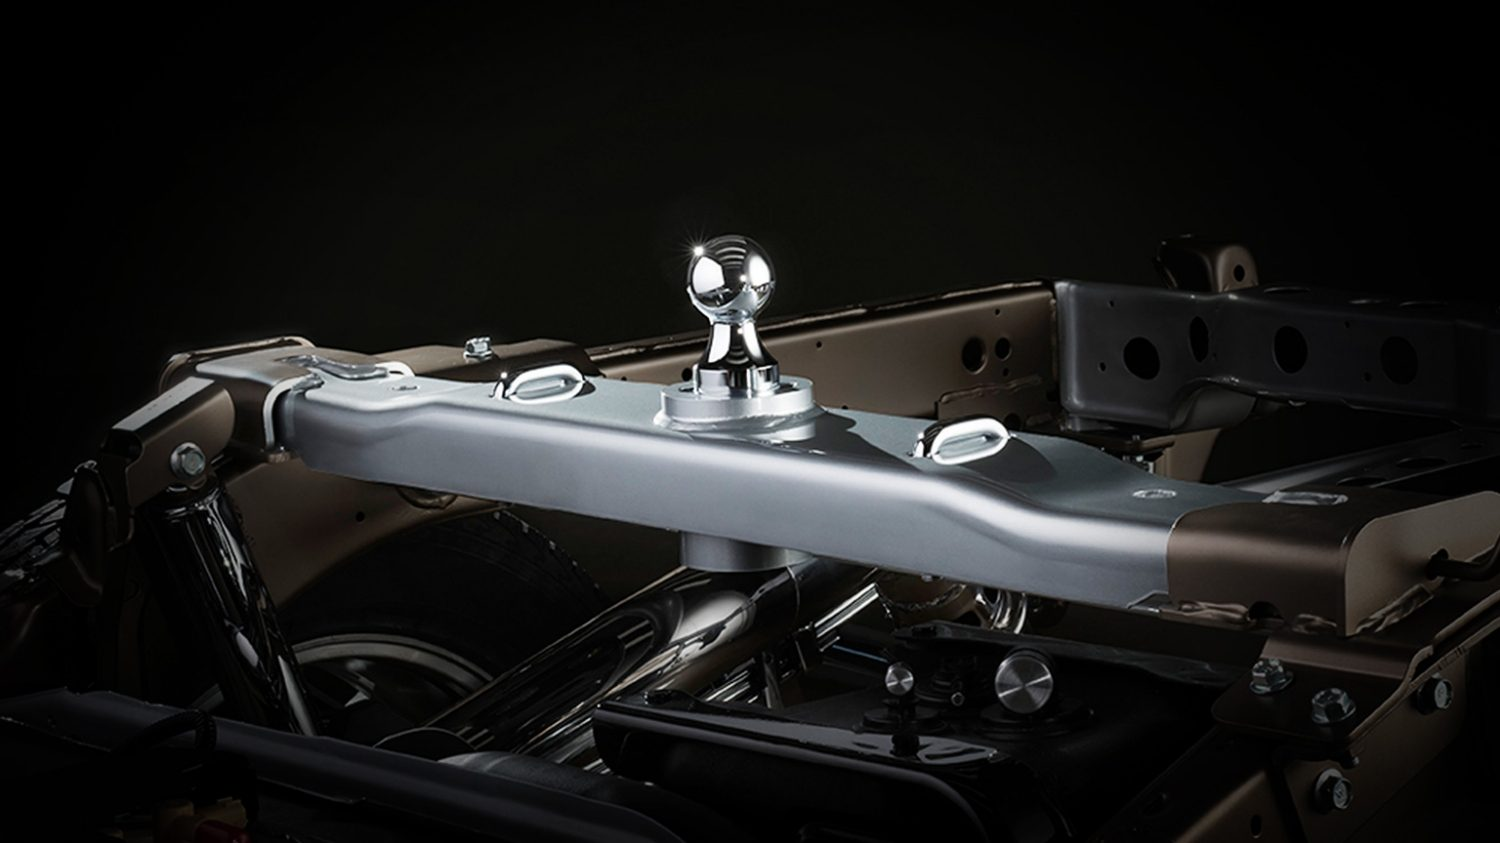 Nissan Titan XD integrated gooseneck hitch detail.